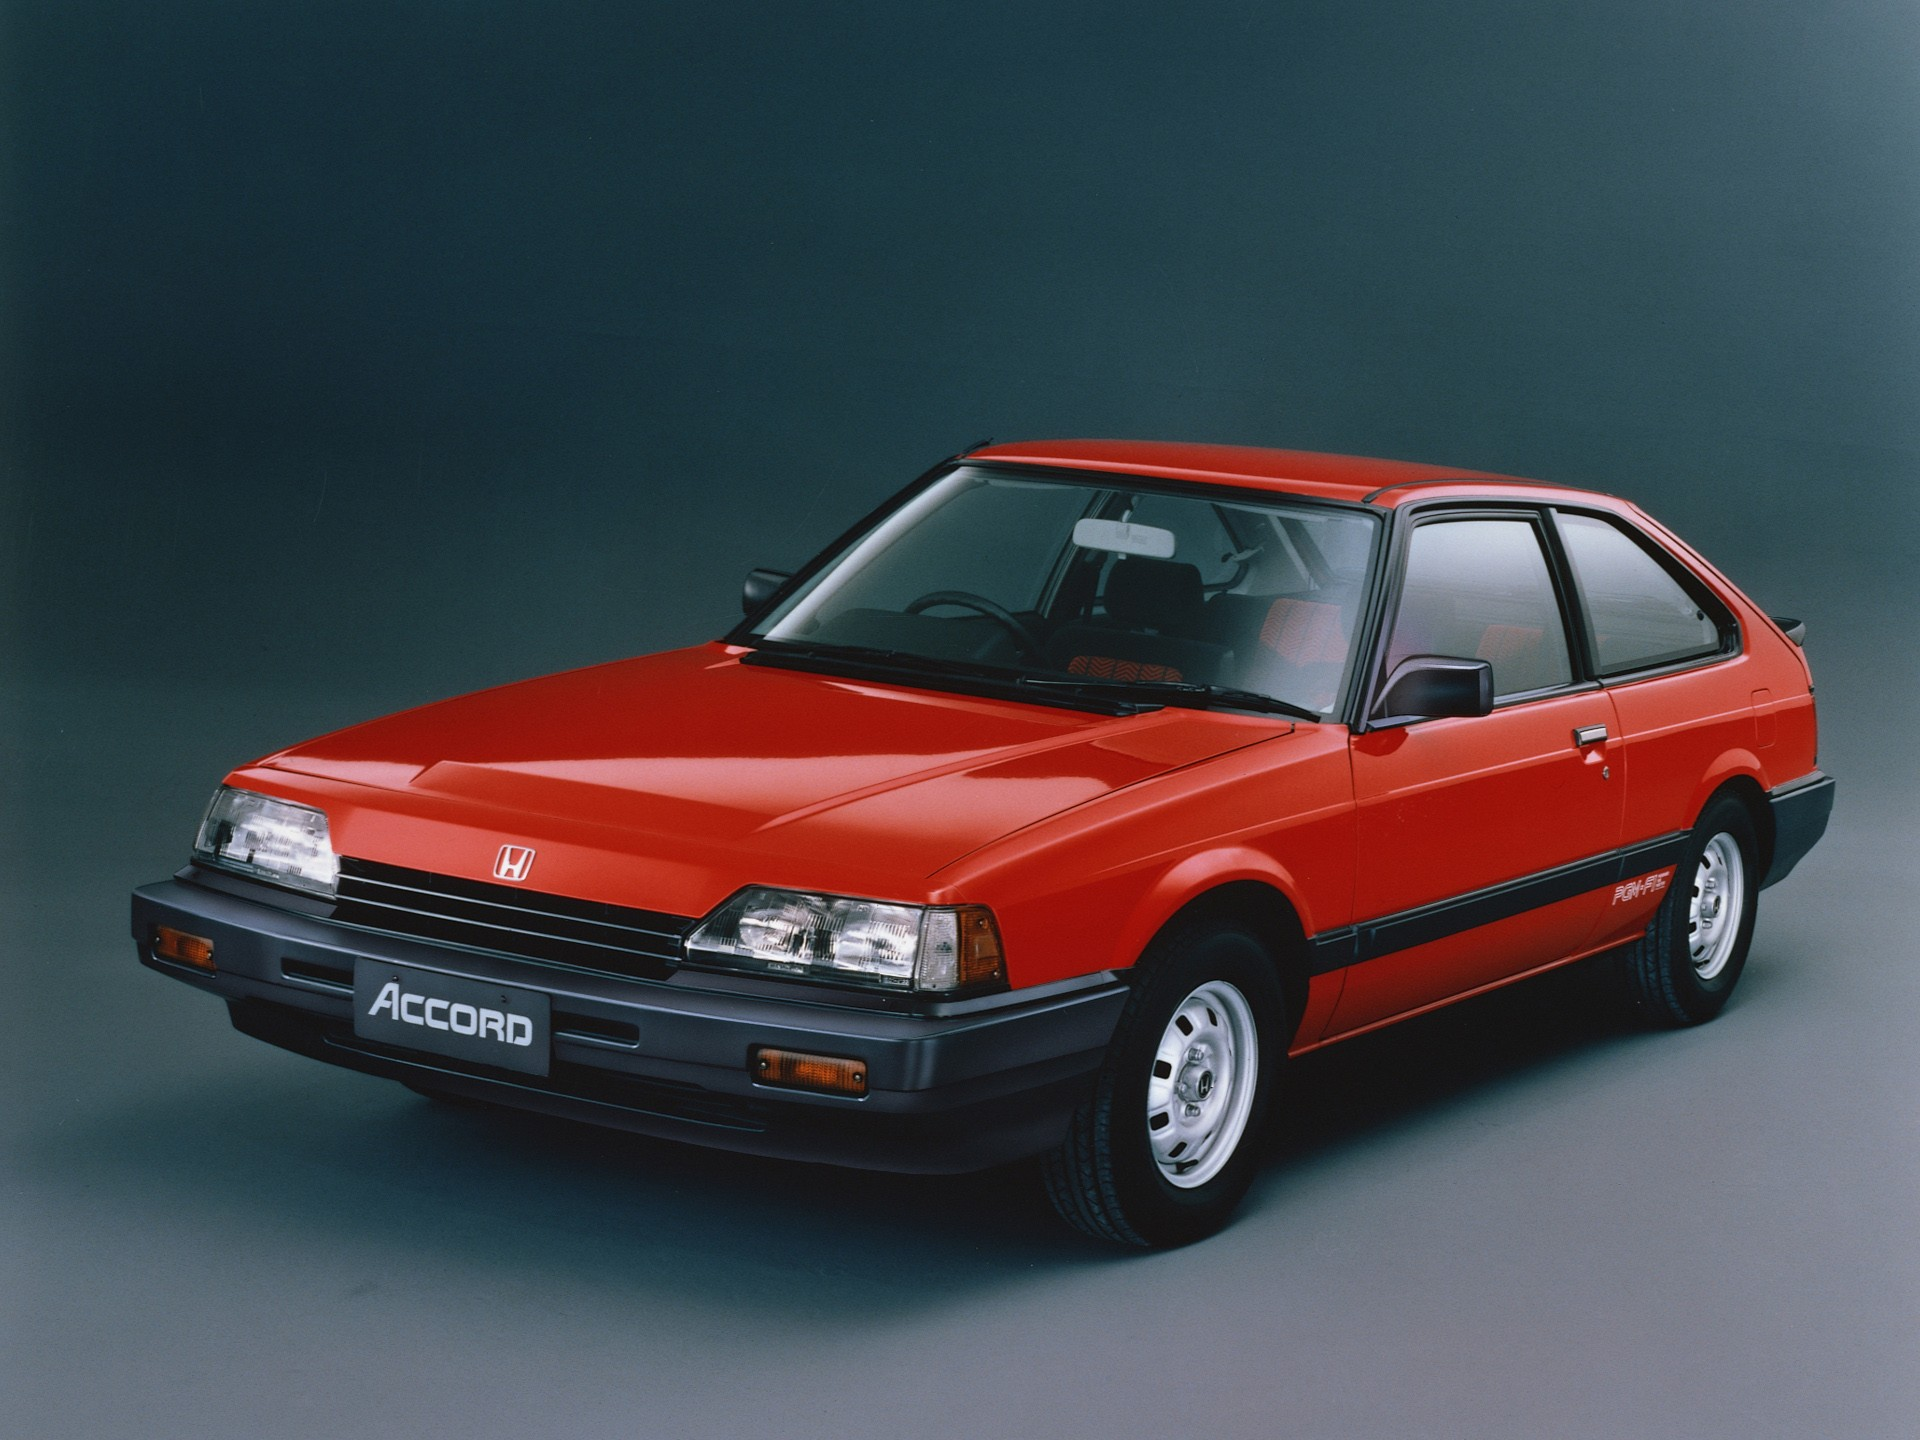 1985 Honda Accord Interior >> HONDA Accord 3 Doors specs & photos - 1981, 1982, 1983, 1984, 1985 - autoevolution